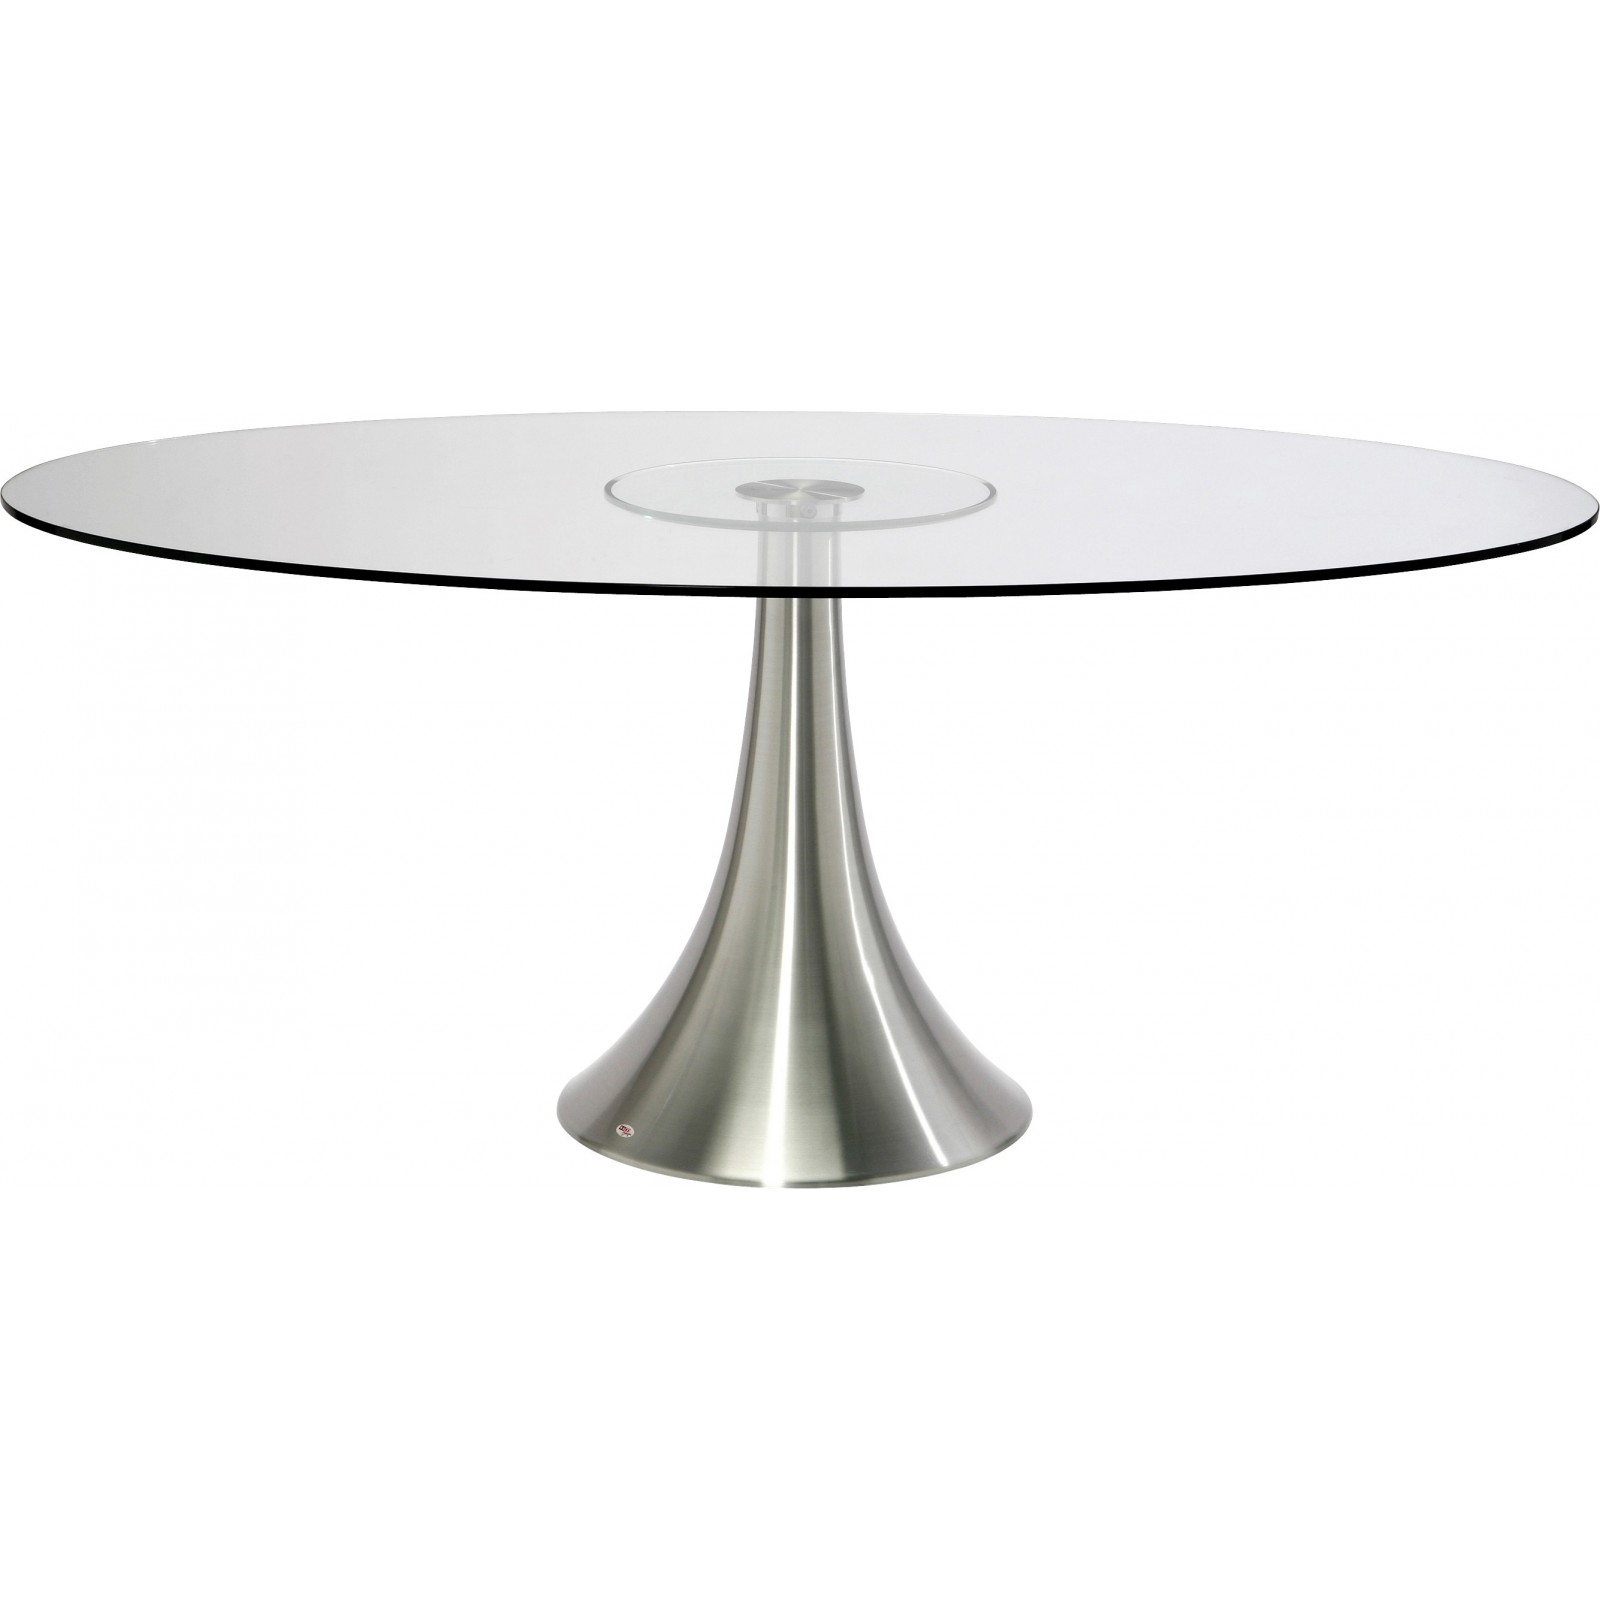 Table design verre possibilita kare design for Grande table design